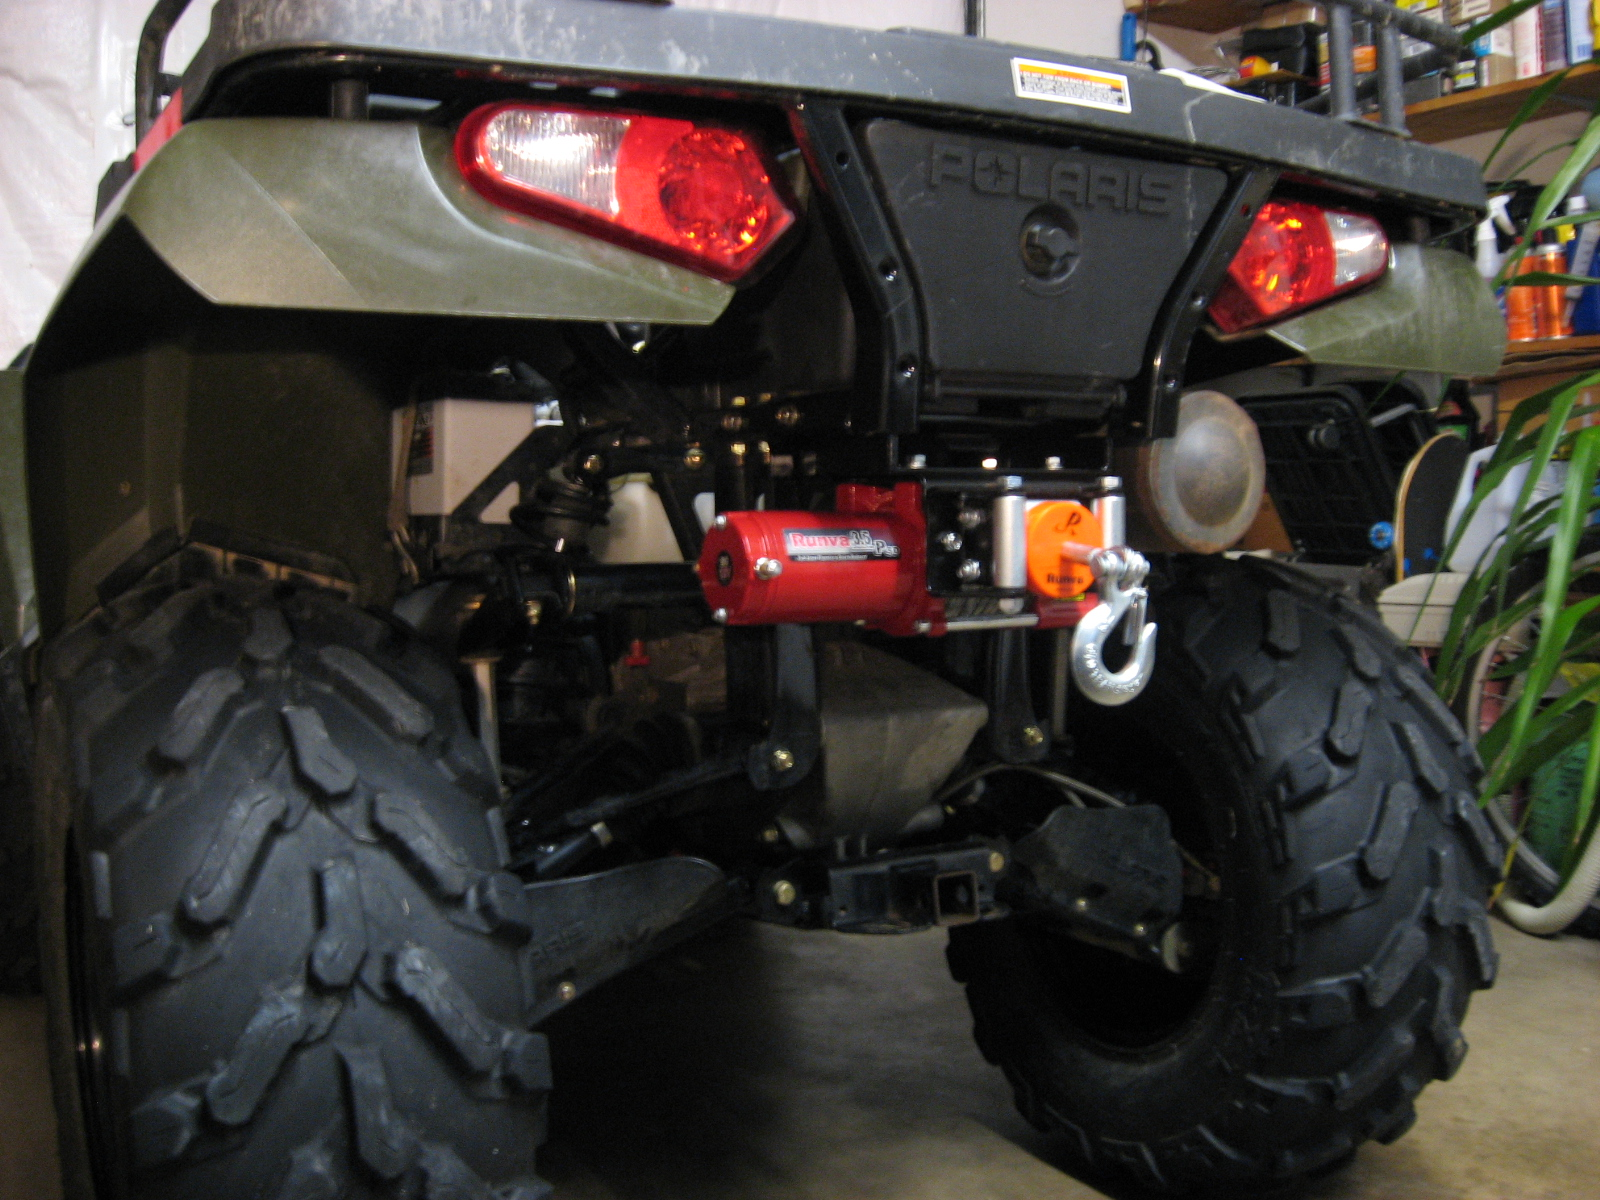 polaris plow hook up This plow system is center mounted to add a long-lasting factor to stand up through winter after winter one particular feature that is unique with this atv snow plow is the lift and tilt protection that it offers against damage to the atv as well as the curb.